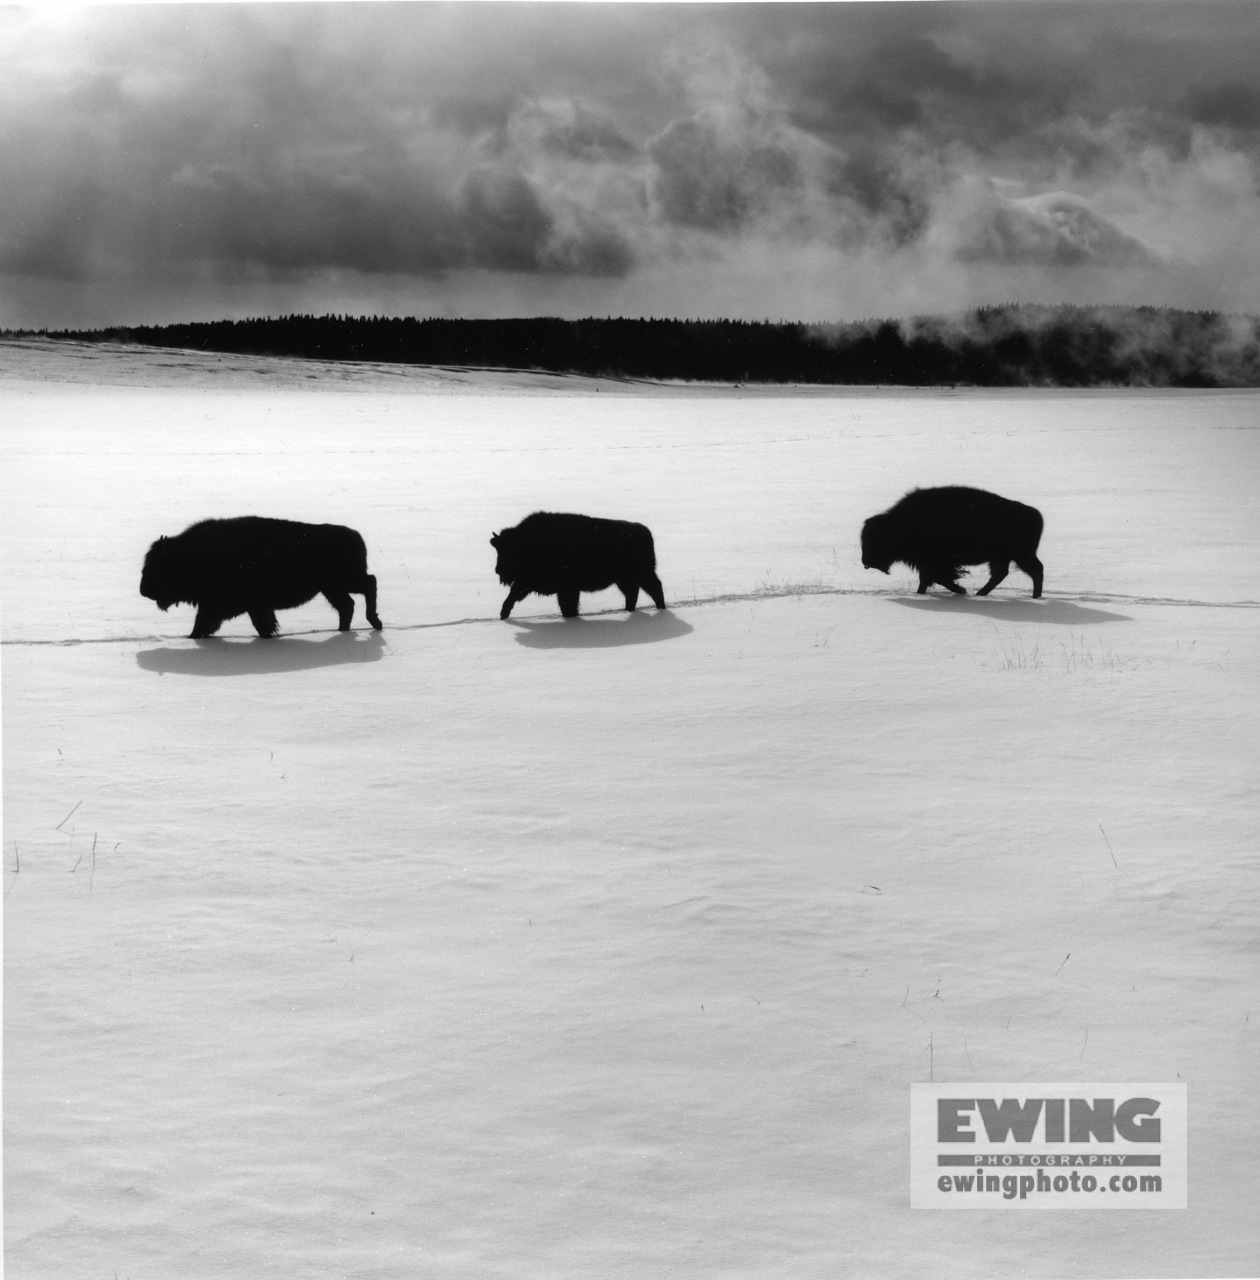 Three Buffalo, Midway Geyser Basin Yellowstone National Park, Wyoming